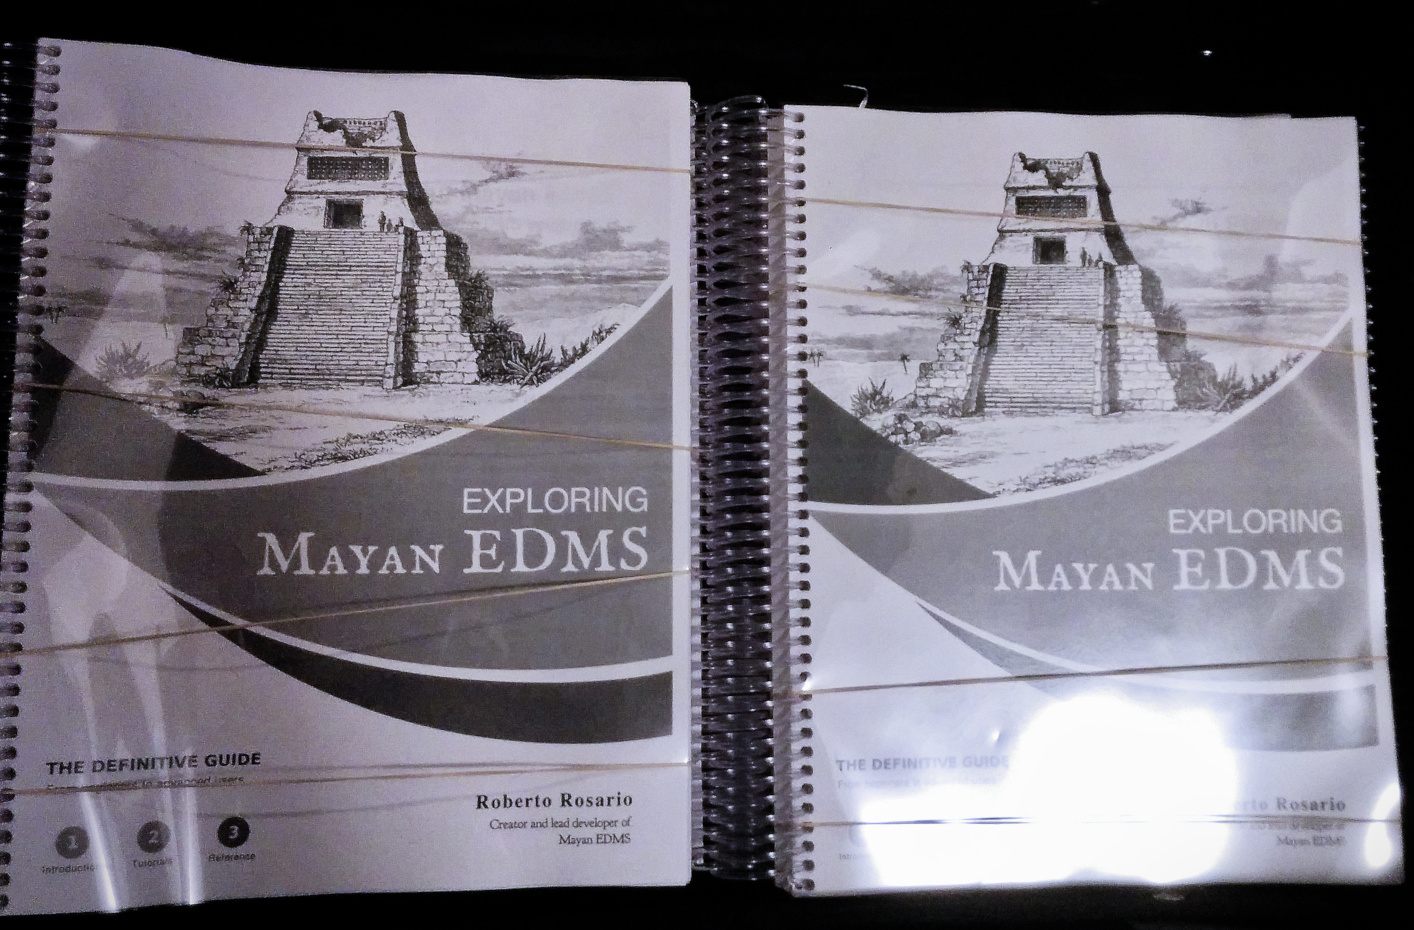 Copies of Exploring Mayan EDMS ready to travel to South Carolina